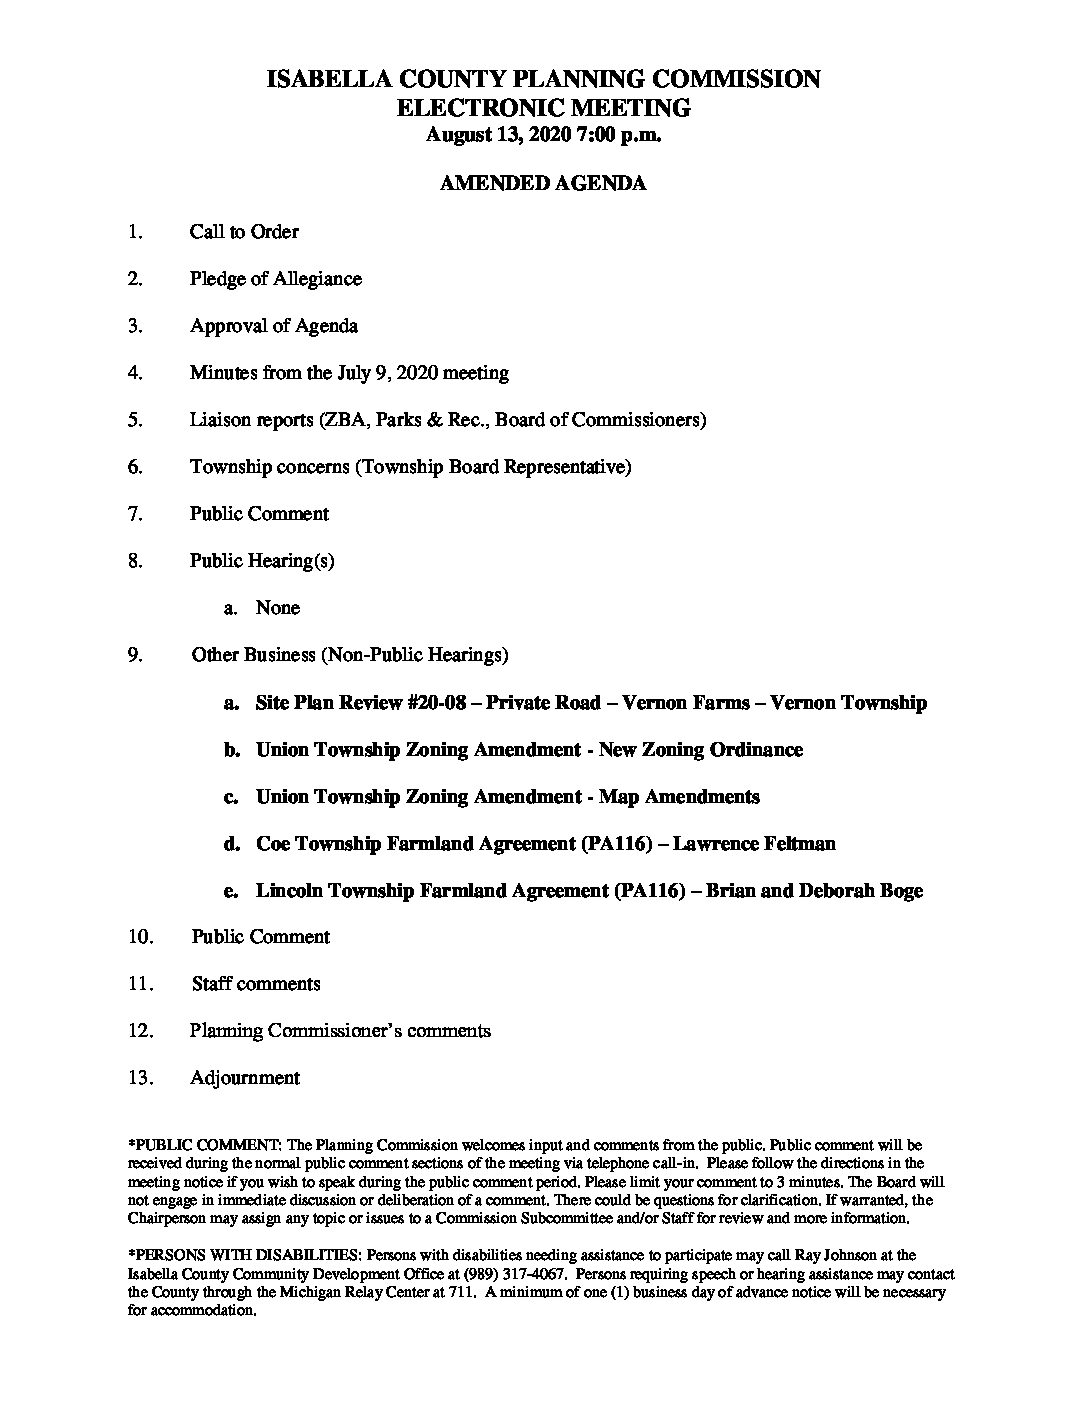 preview image of first page August 13, 2020 Amended Agenda